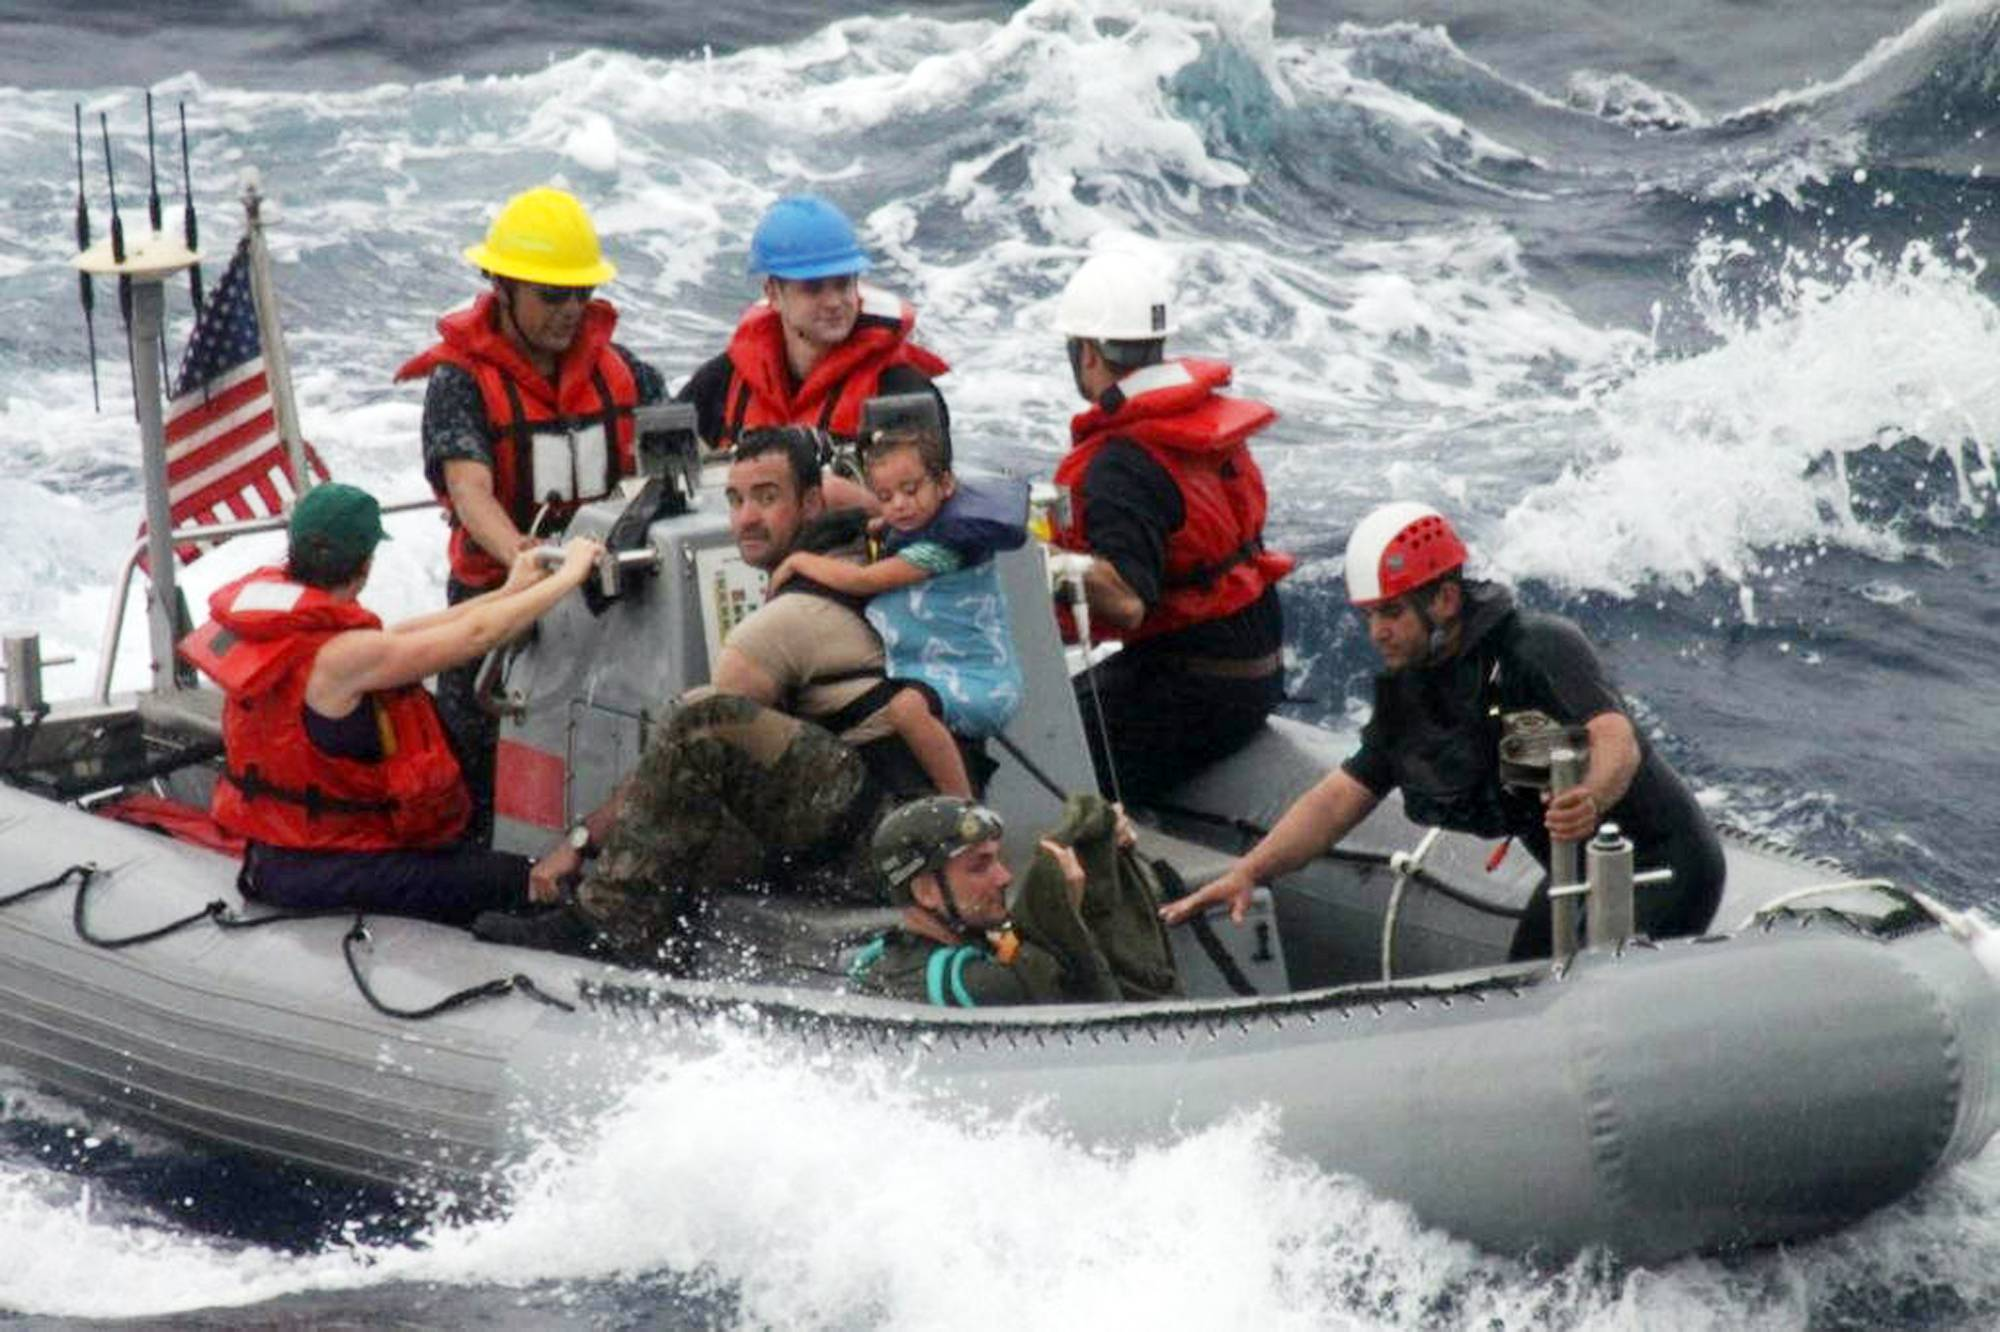 Sailors from the frigate USS Vandegrift assist in the rescue of the Kaufman family with a sick infant on the ship's small boat, as part of a joint U.S. Navy, Coast Guard and California Air National Guard rescue effort.